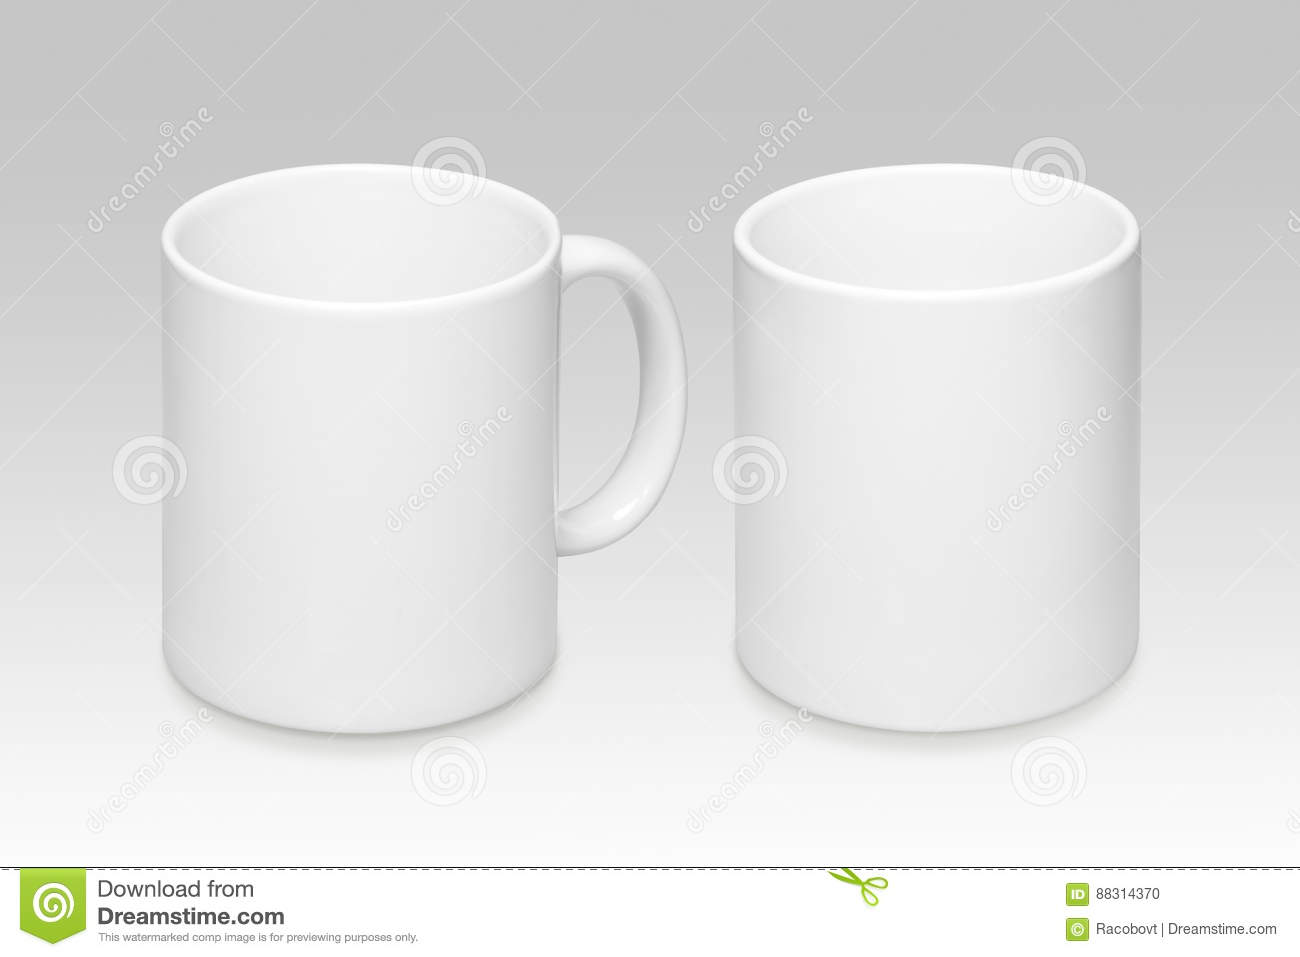 Two positions of a white mug